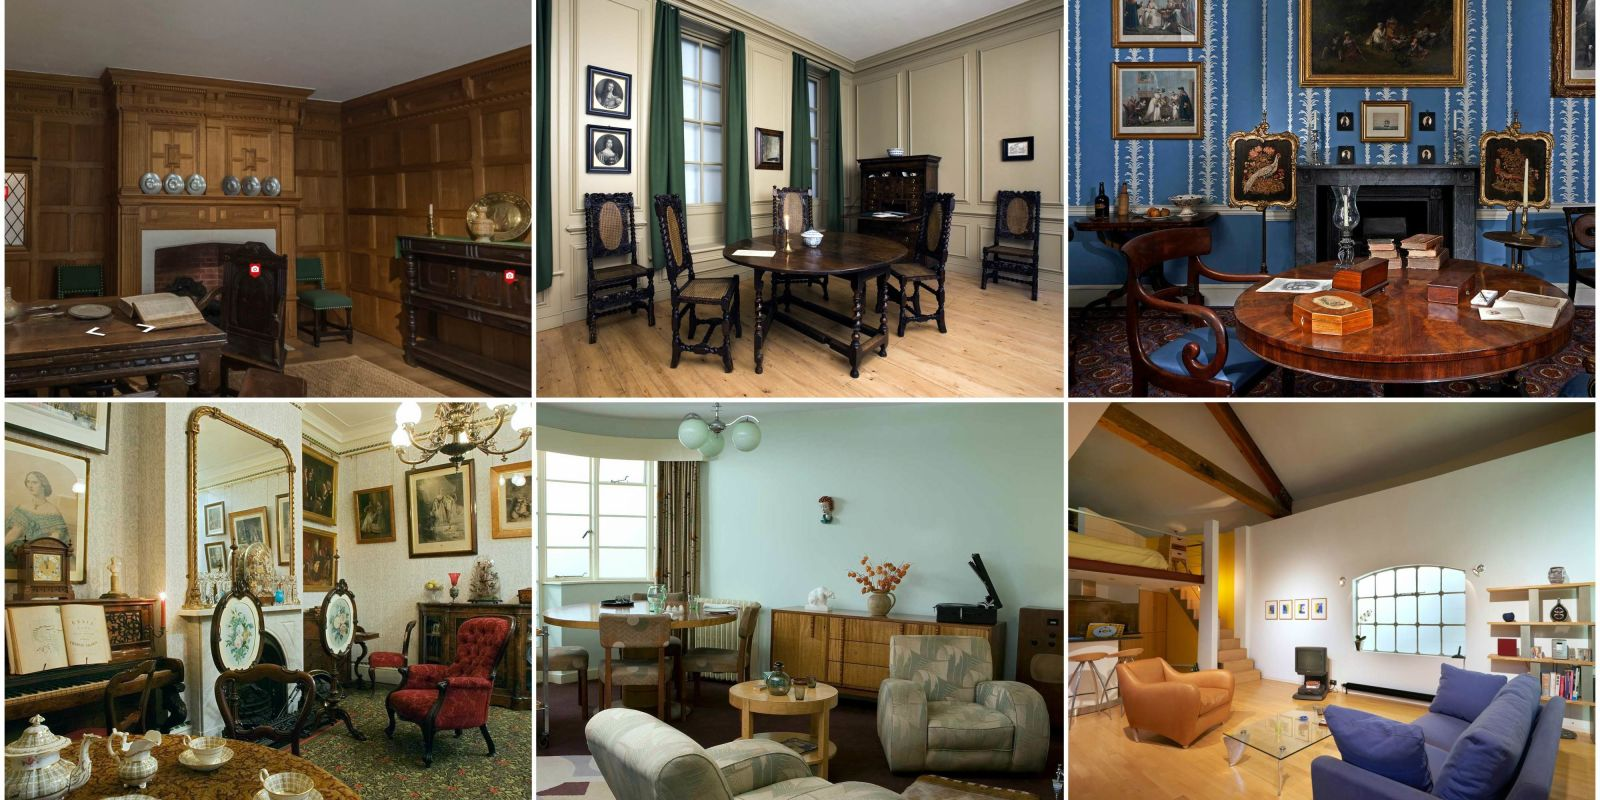 A Virtual Tour Of Interior Design In London Through The Ages